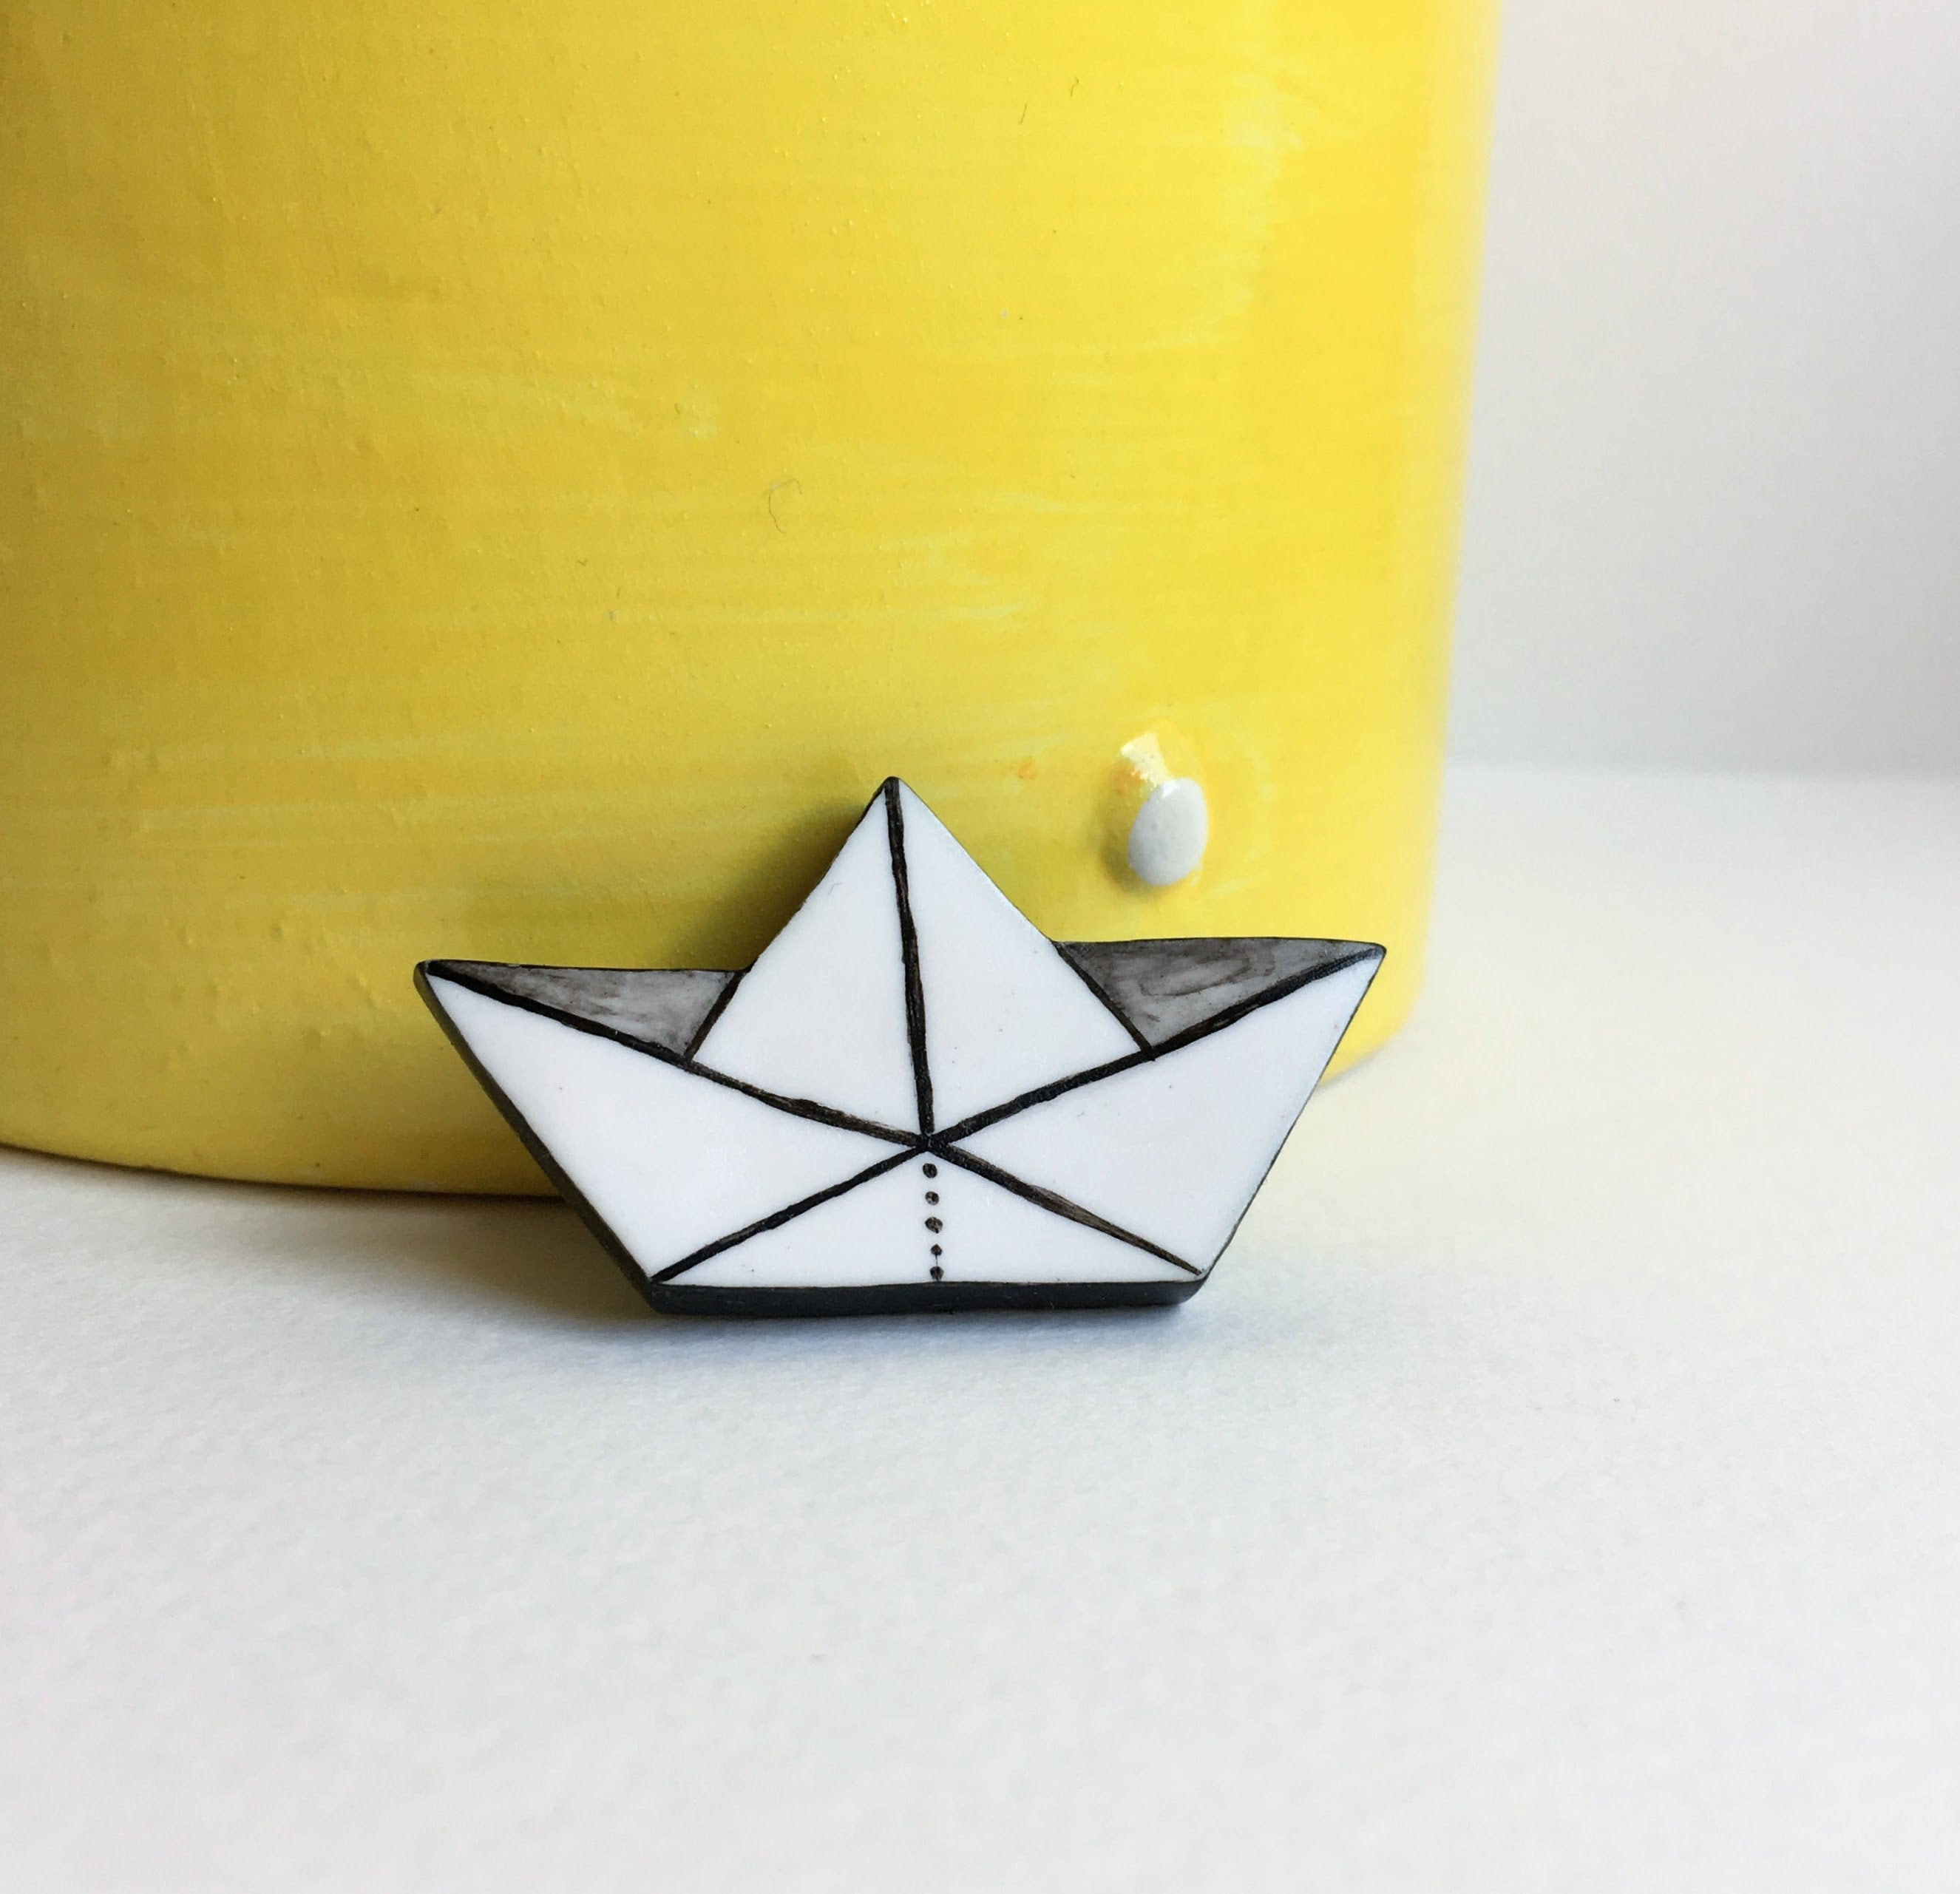 Origami Paper Boat Origami Paper Boat Handmade Polymer Clay Minimalist Brooch Unique Hand Painted Pin Gift